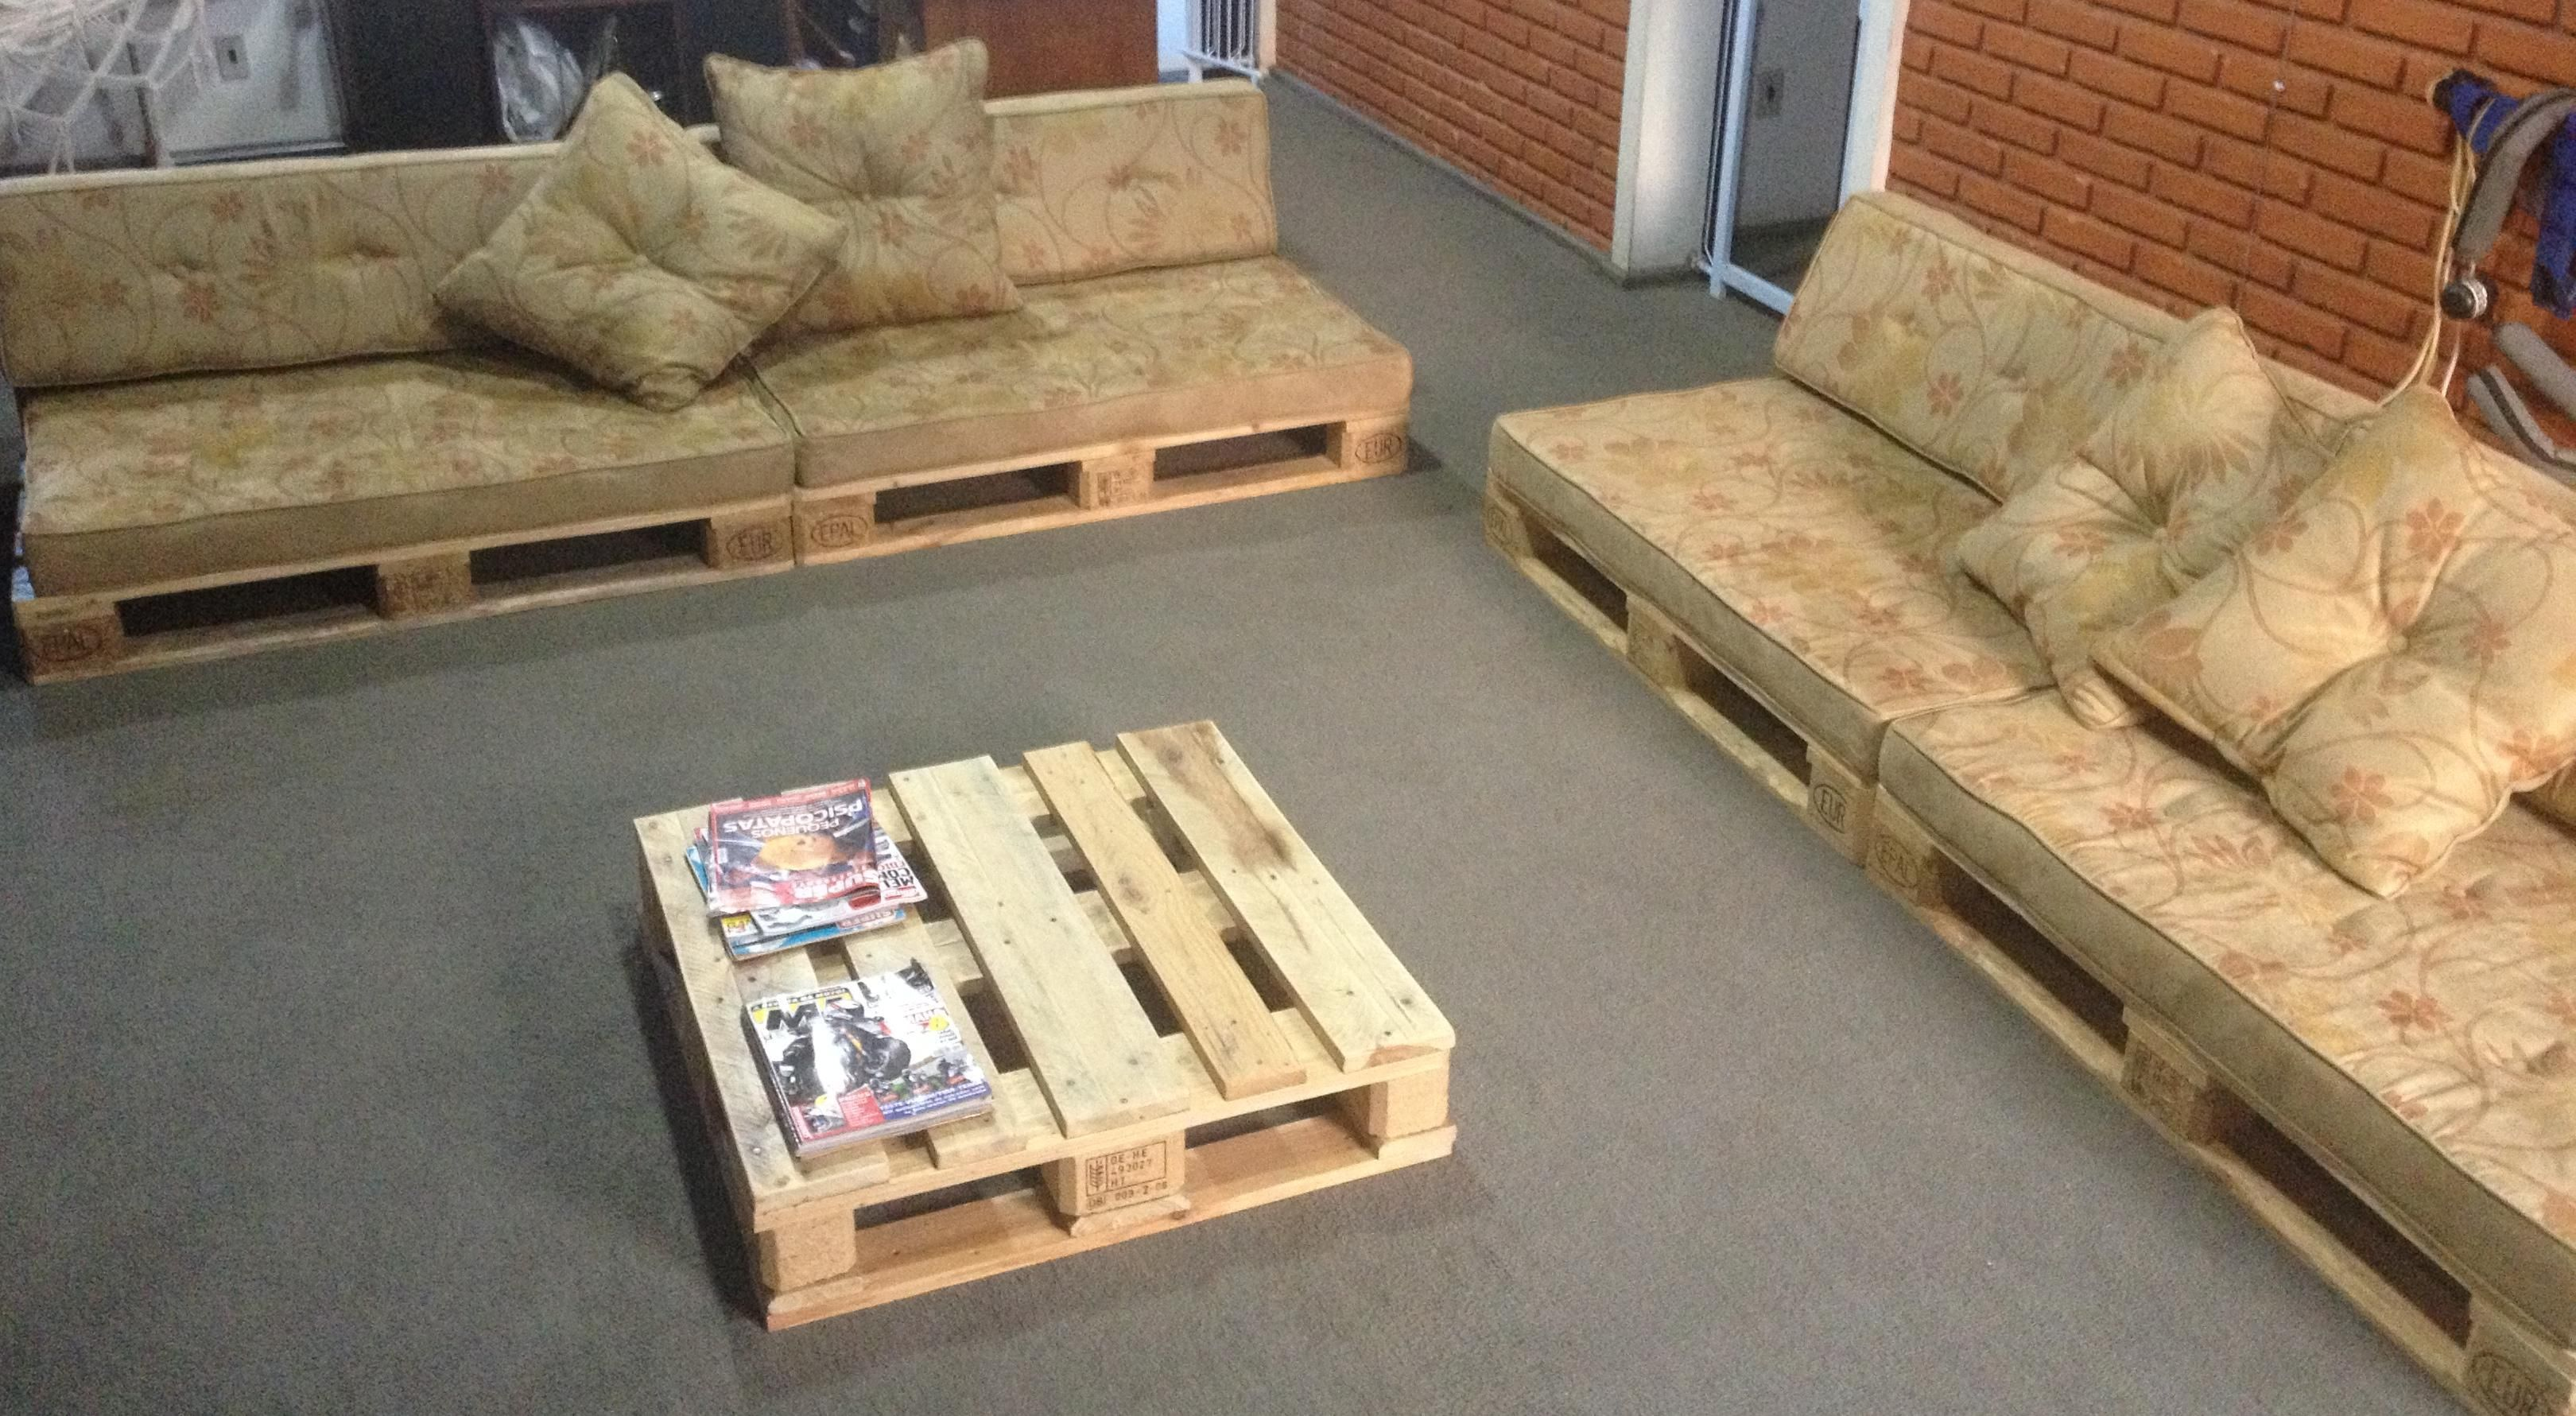 Diy pallet sofa with table 99 pallets - Recycled Pallet Furniture Ideas Diy Pallet Projects 99 Pallets Part 2